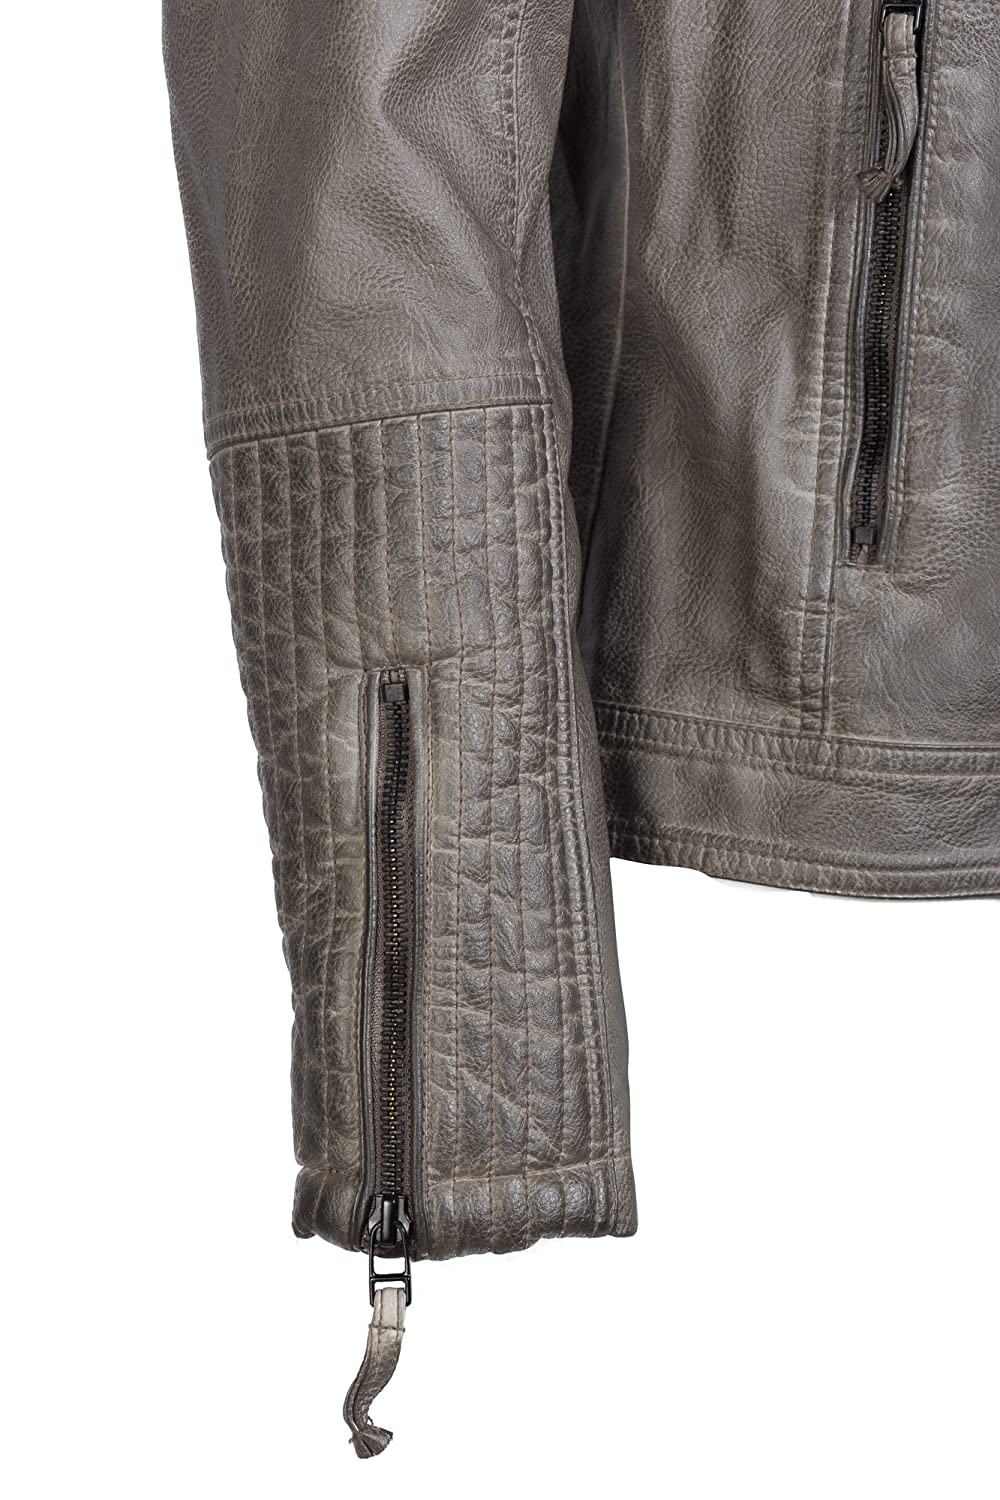 Gipsy by Mauritius Men's Jacket Jacket - brown - 52